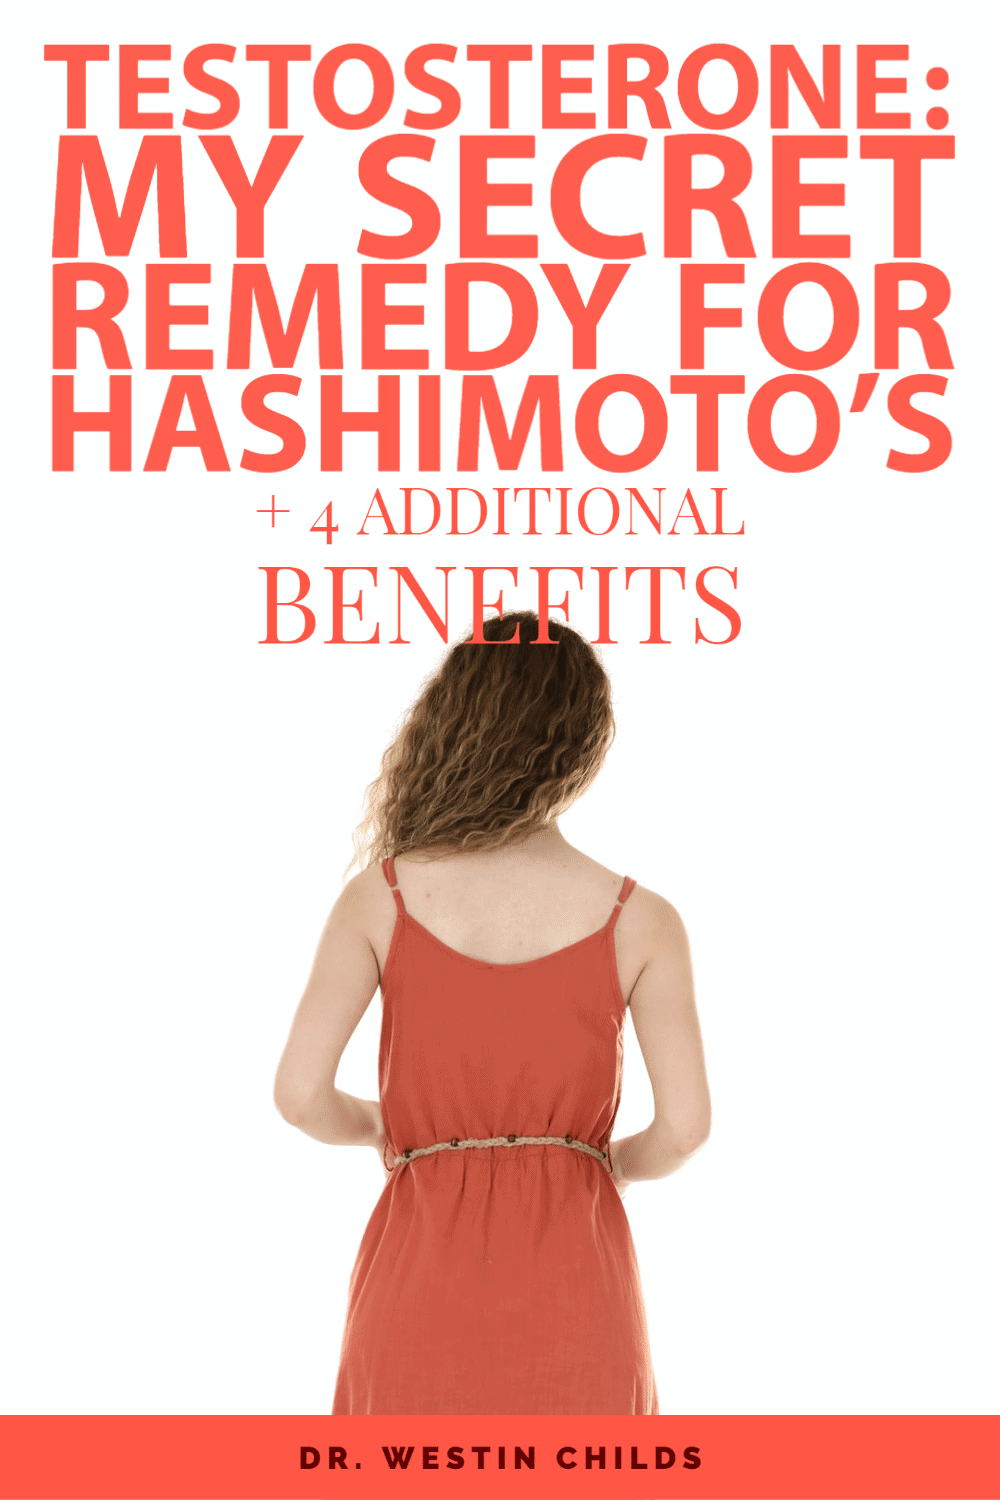 Testosterone as a secret therapy for hashimoto's thyroiditis